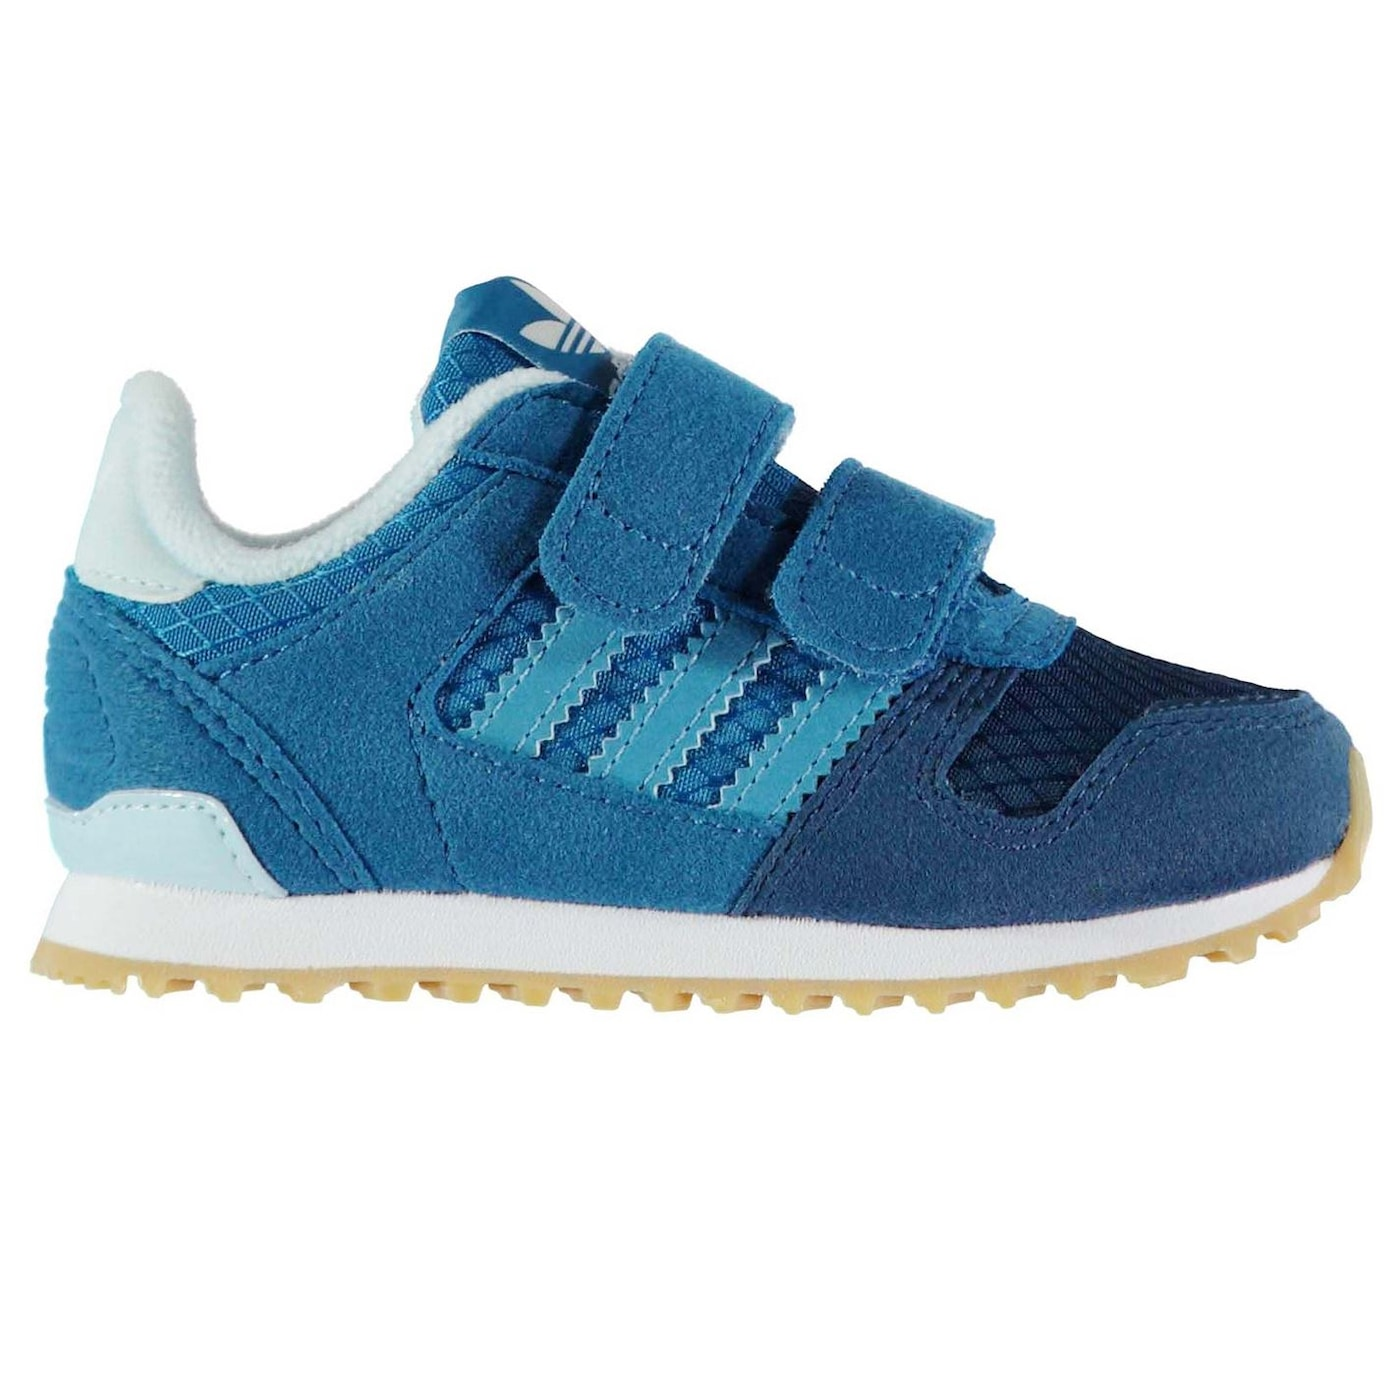 d775c7d04c1bf Adidas ZX 700 CF Trainers Infant Boys